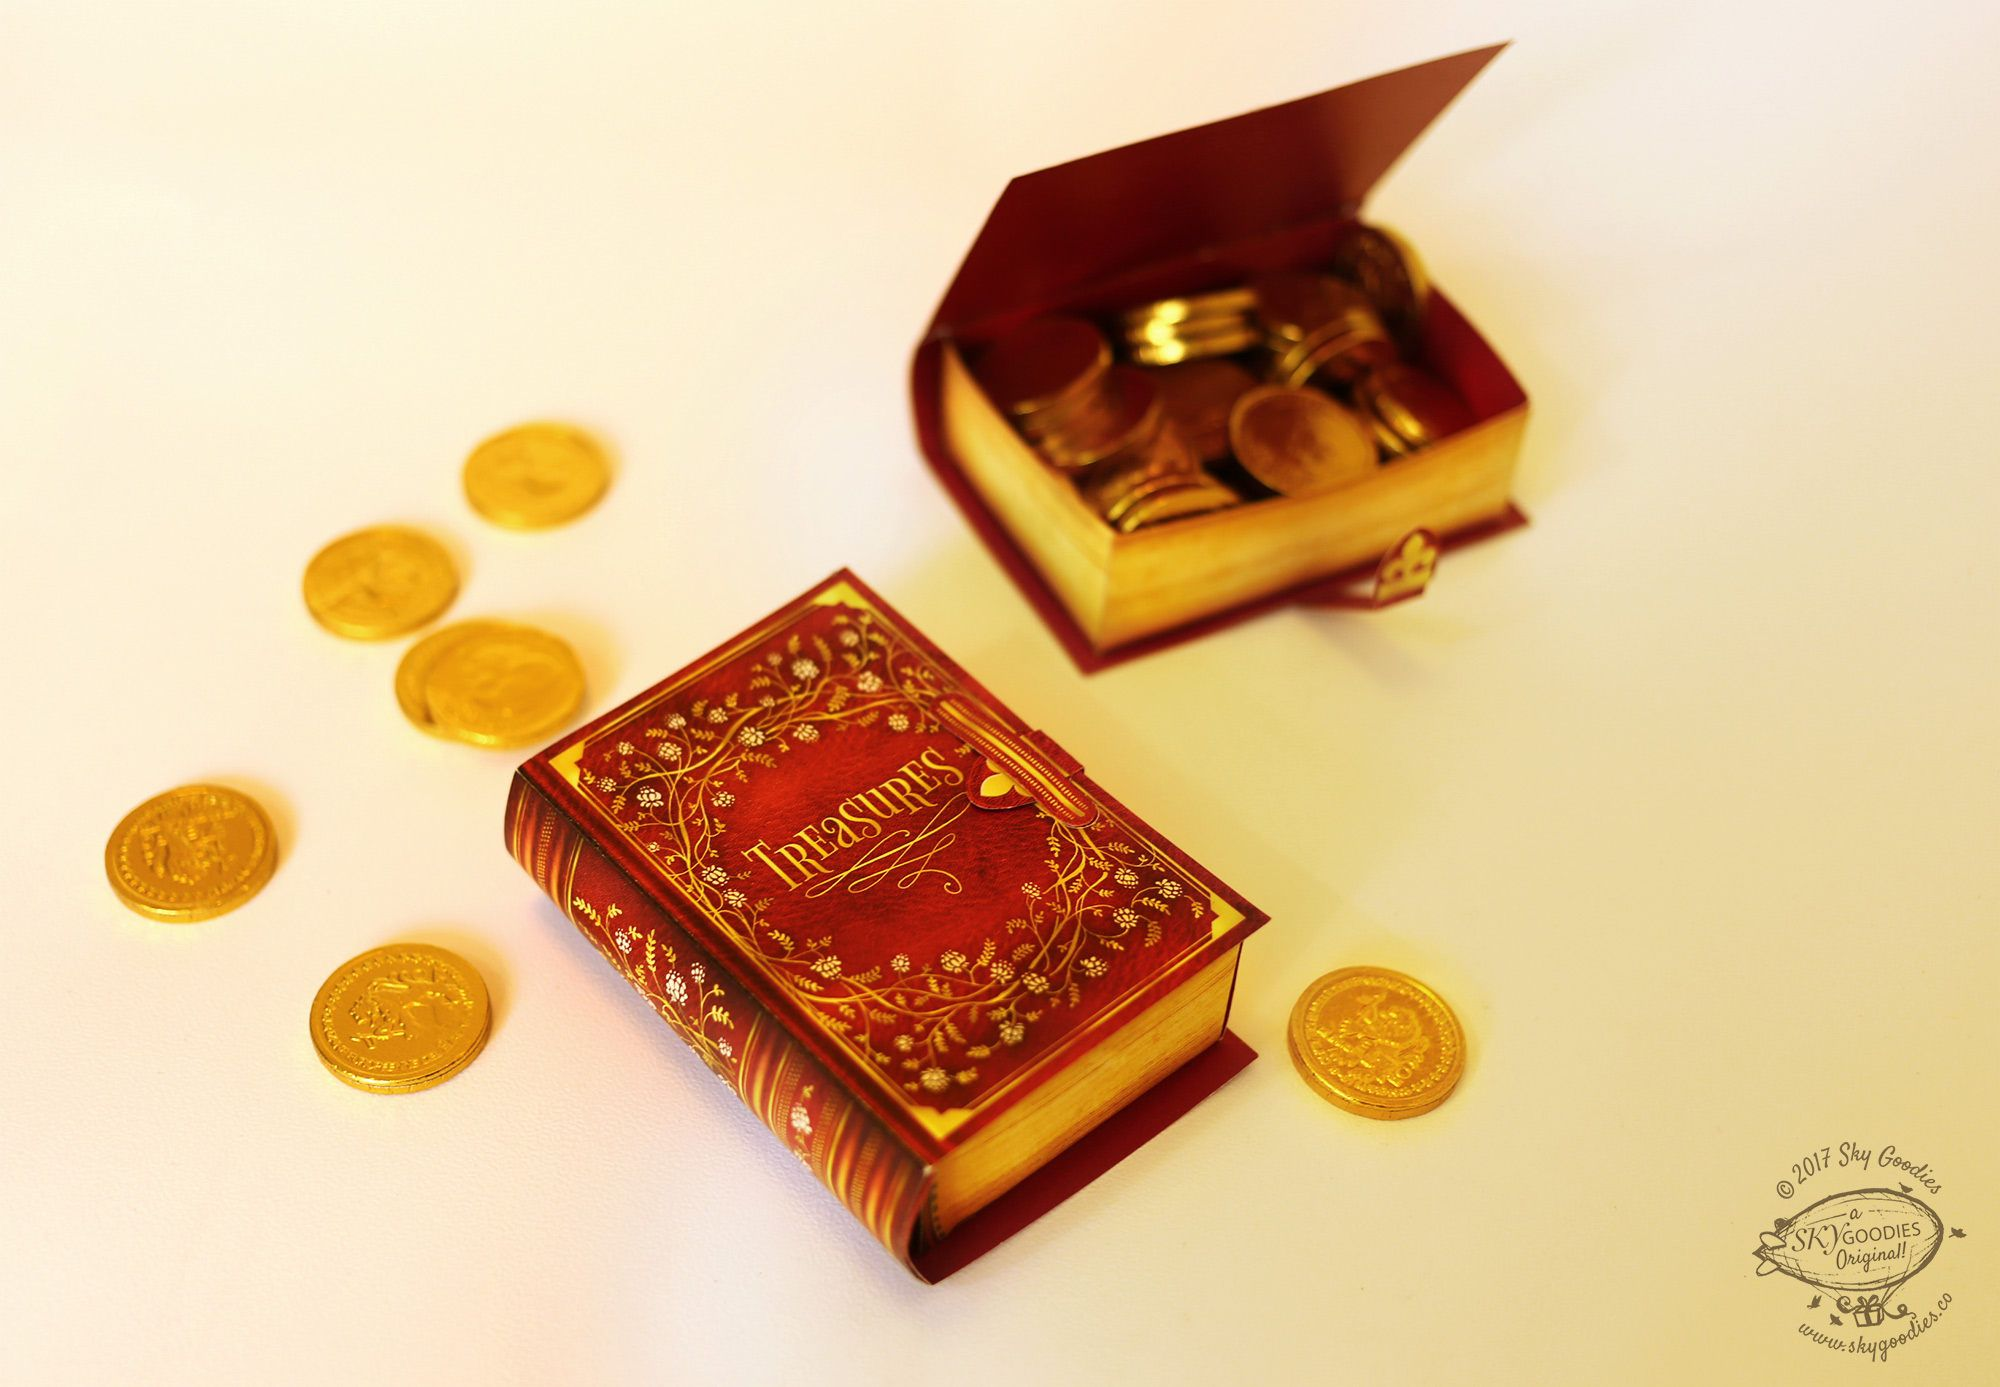 goody boxes disguised as old world books in a size so adorable